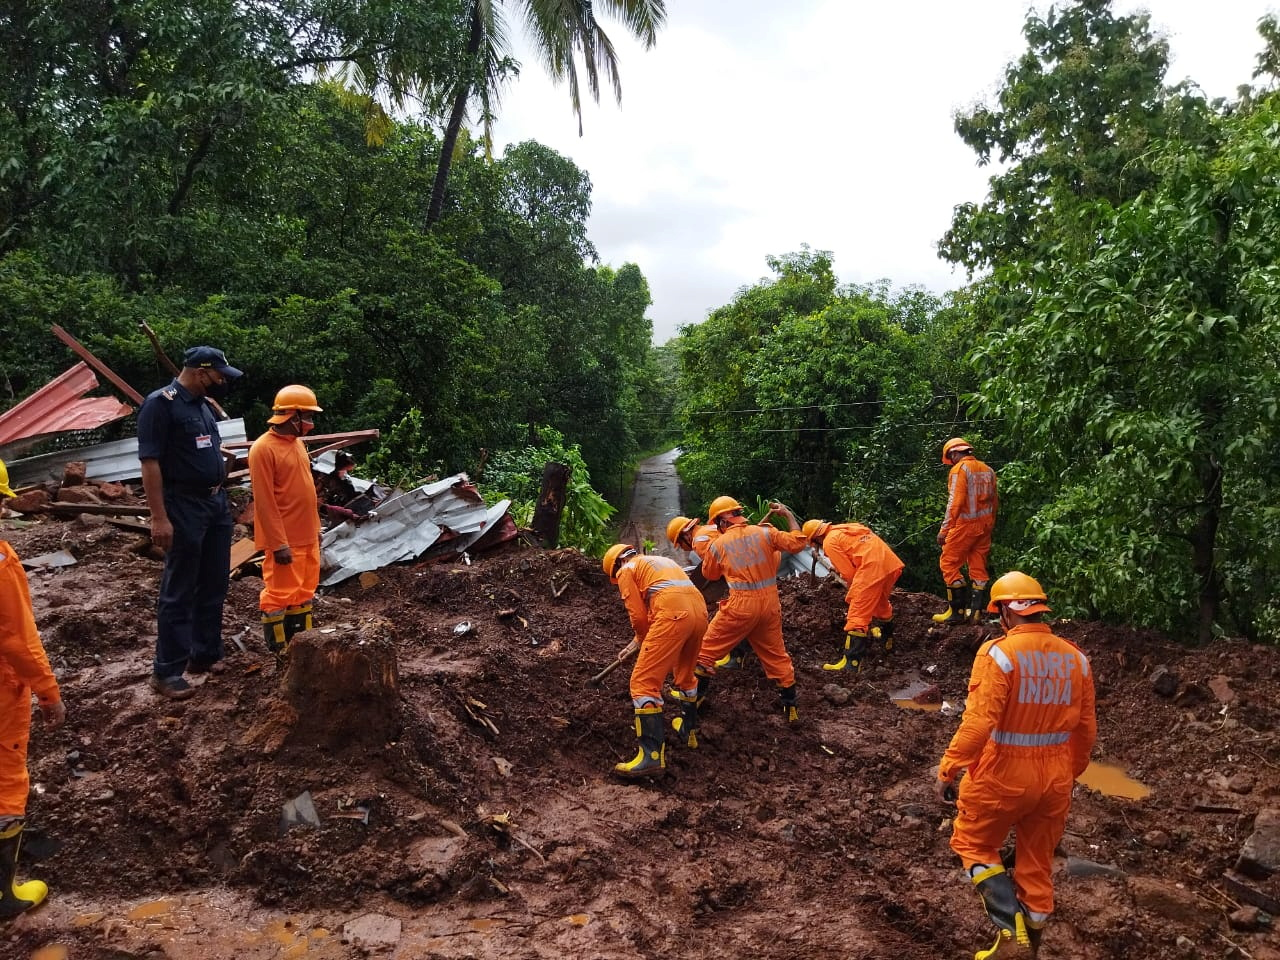 Members of National Disaster Response Force (NDRF) conduct a search and rescue operation after a landslide following heavy rains in Ratnagiri district, Maharashtra state, India, July 25, 2021. National Disaster Response Force/Handout via REUTERS